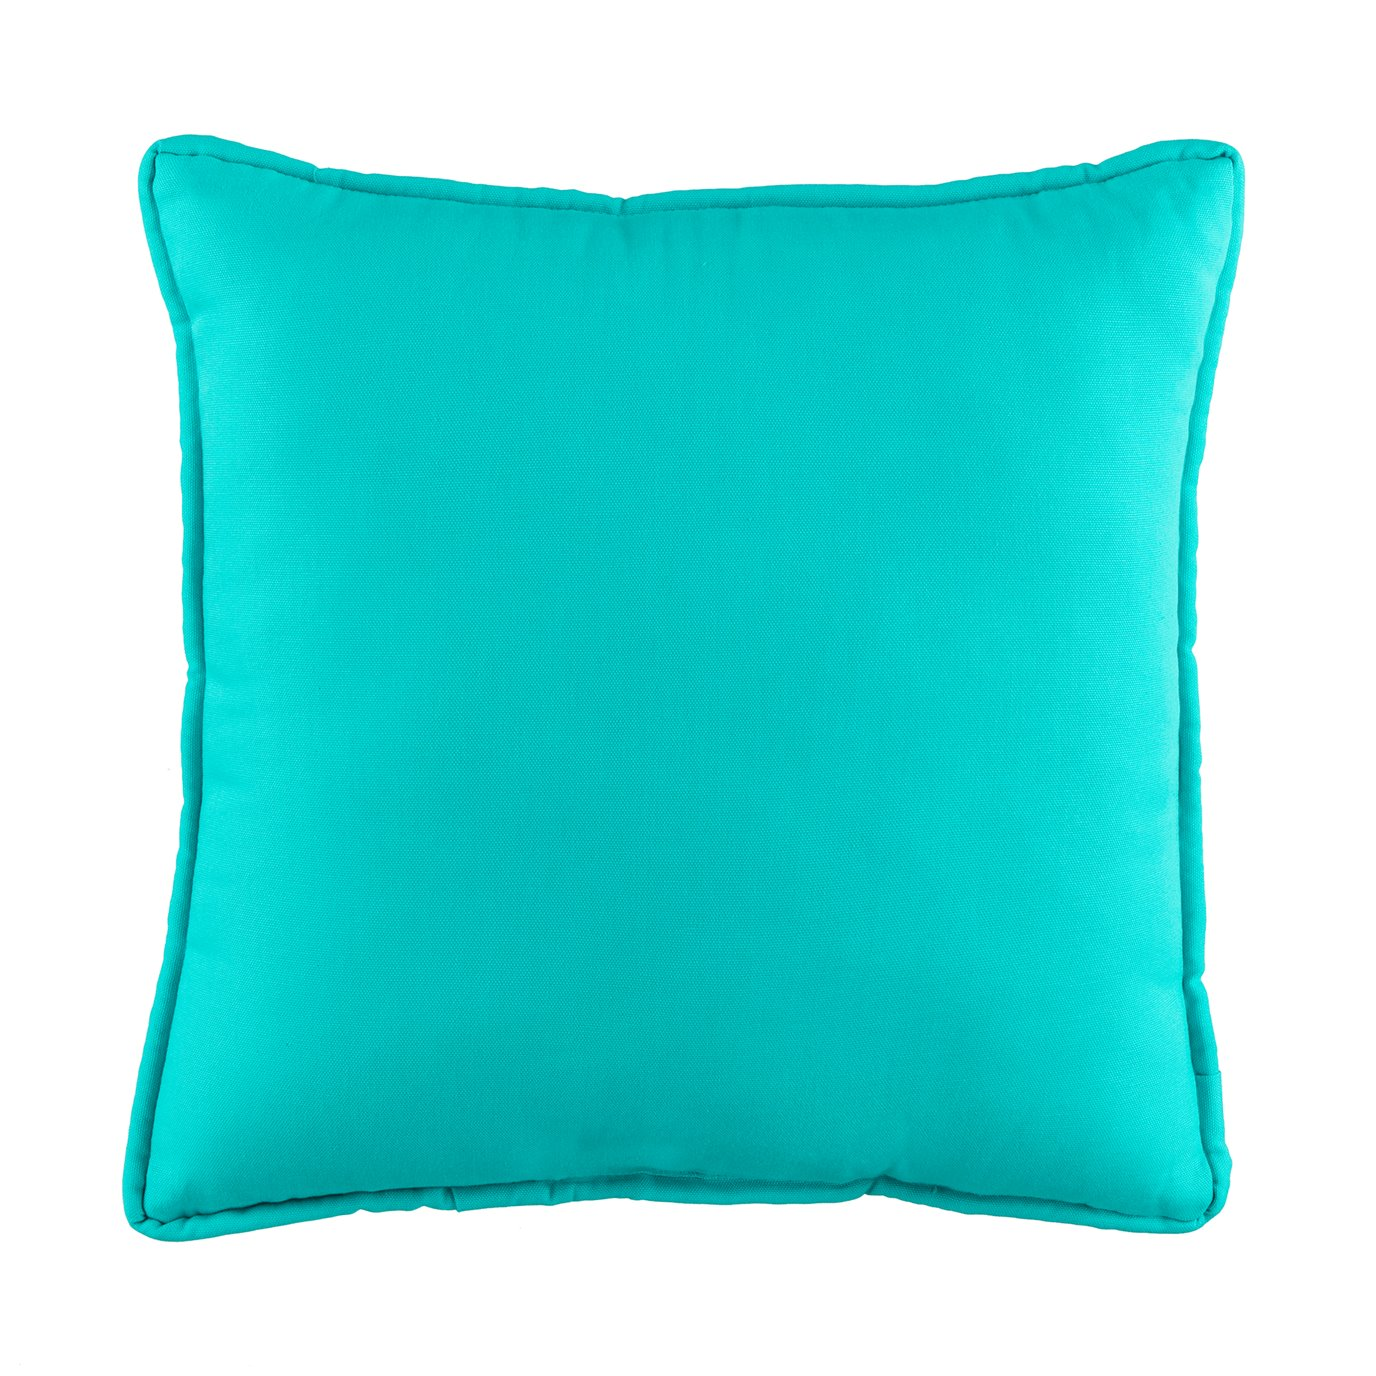 In the Sea Blue Square Pillow